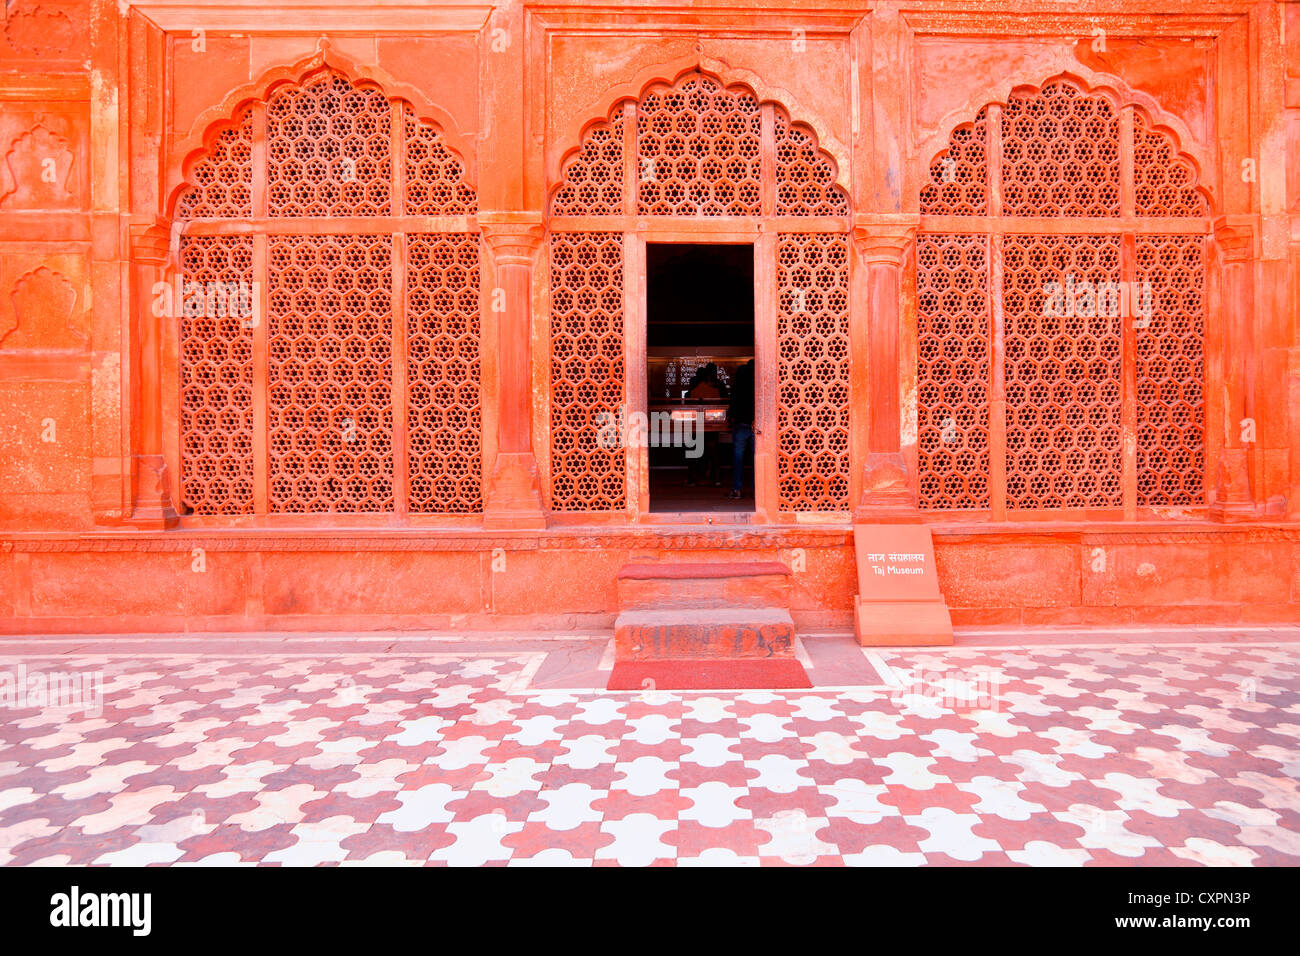 Architectural detail of the Mosque at the Taj Mahal, Agra, India - Stock Image